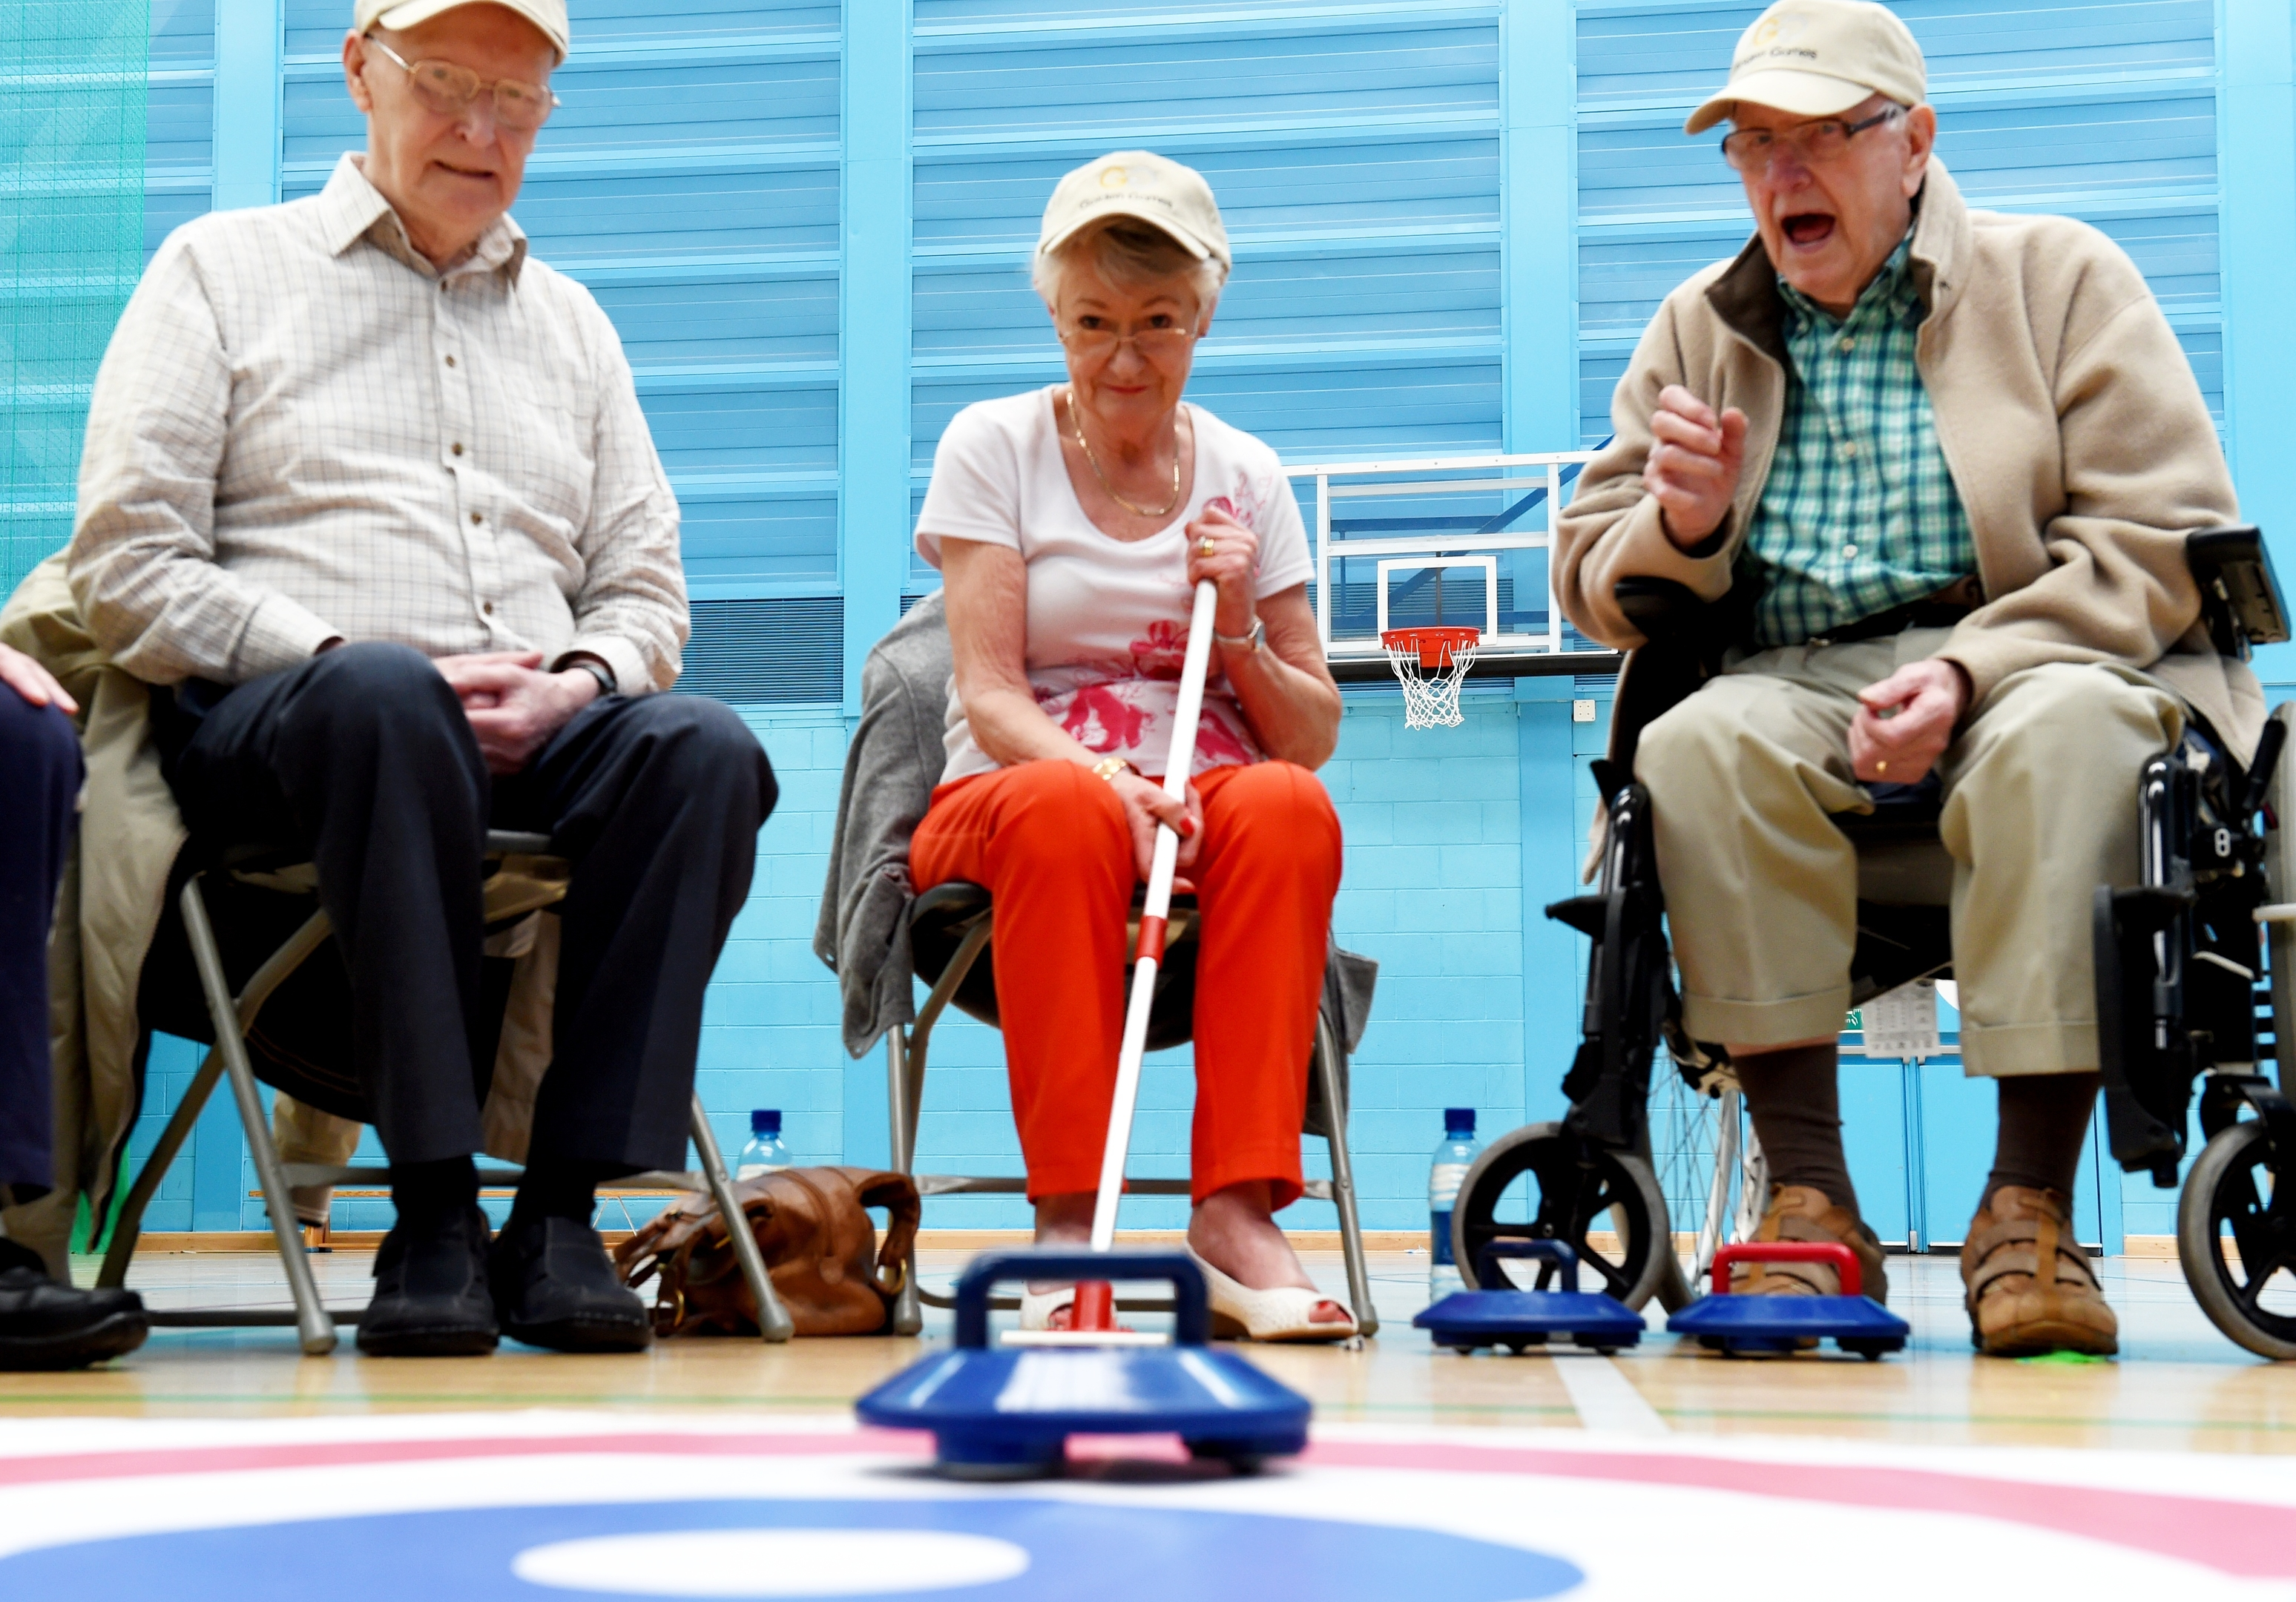 Jimmy Riach, Mary Mitchell and Sandy Courtman compete in the 2016 Golden Games curling. Picture by Colin Rennie